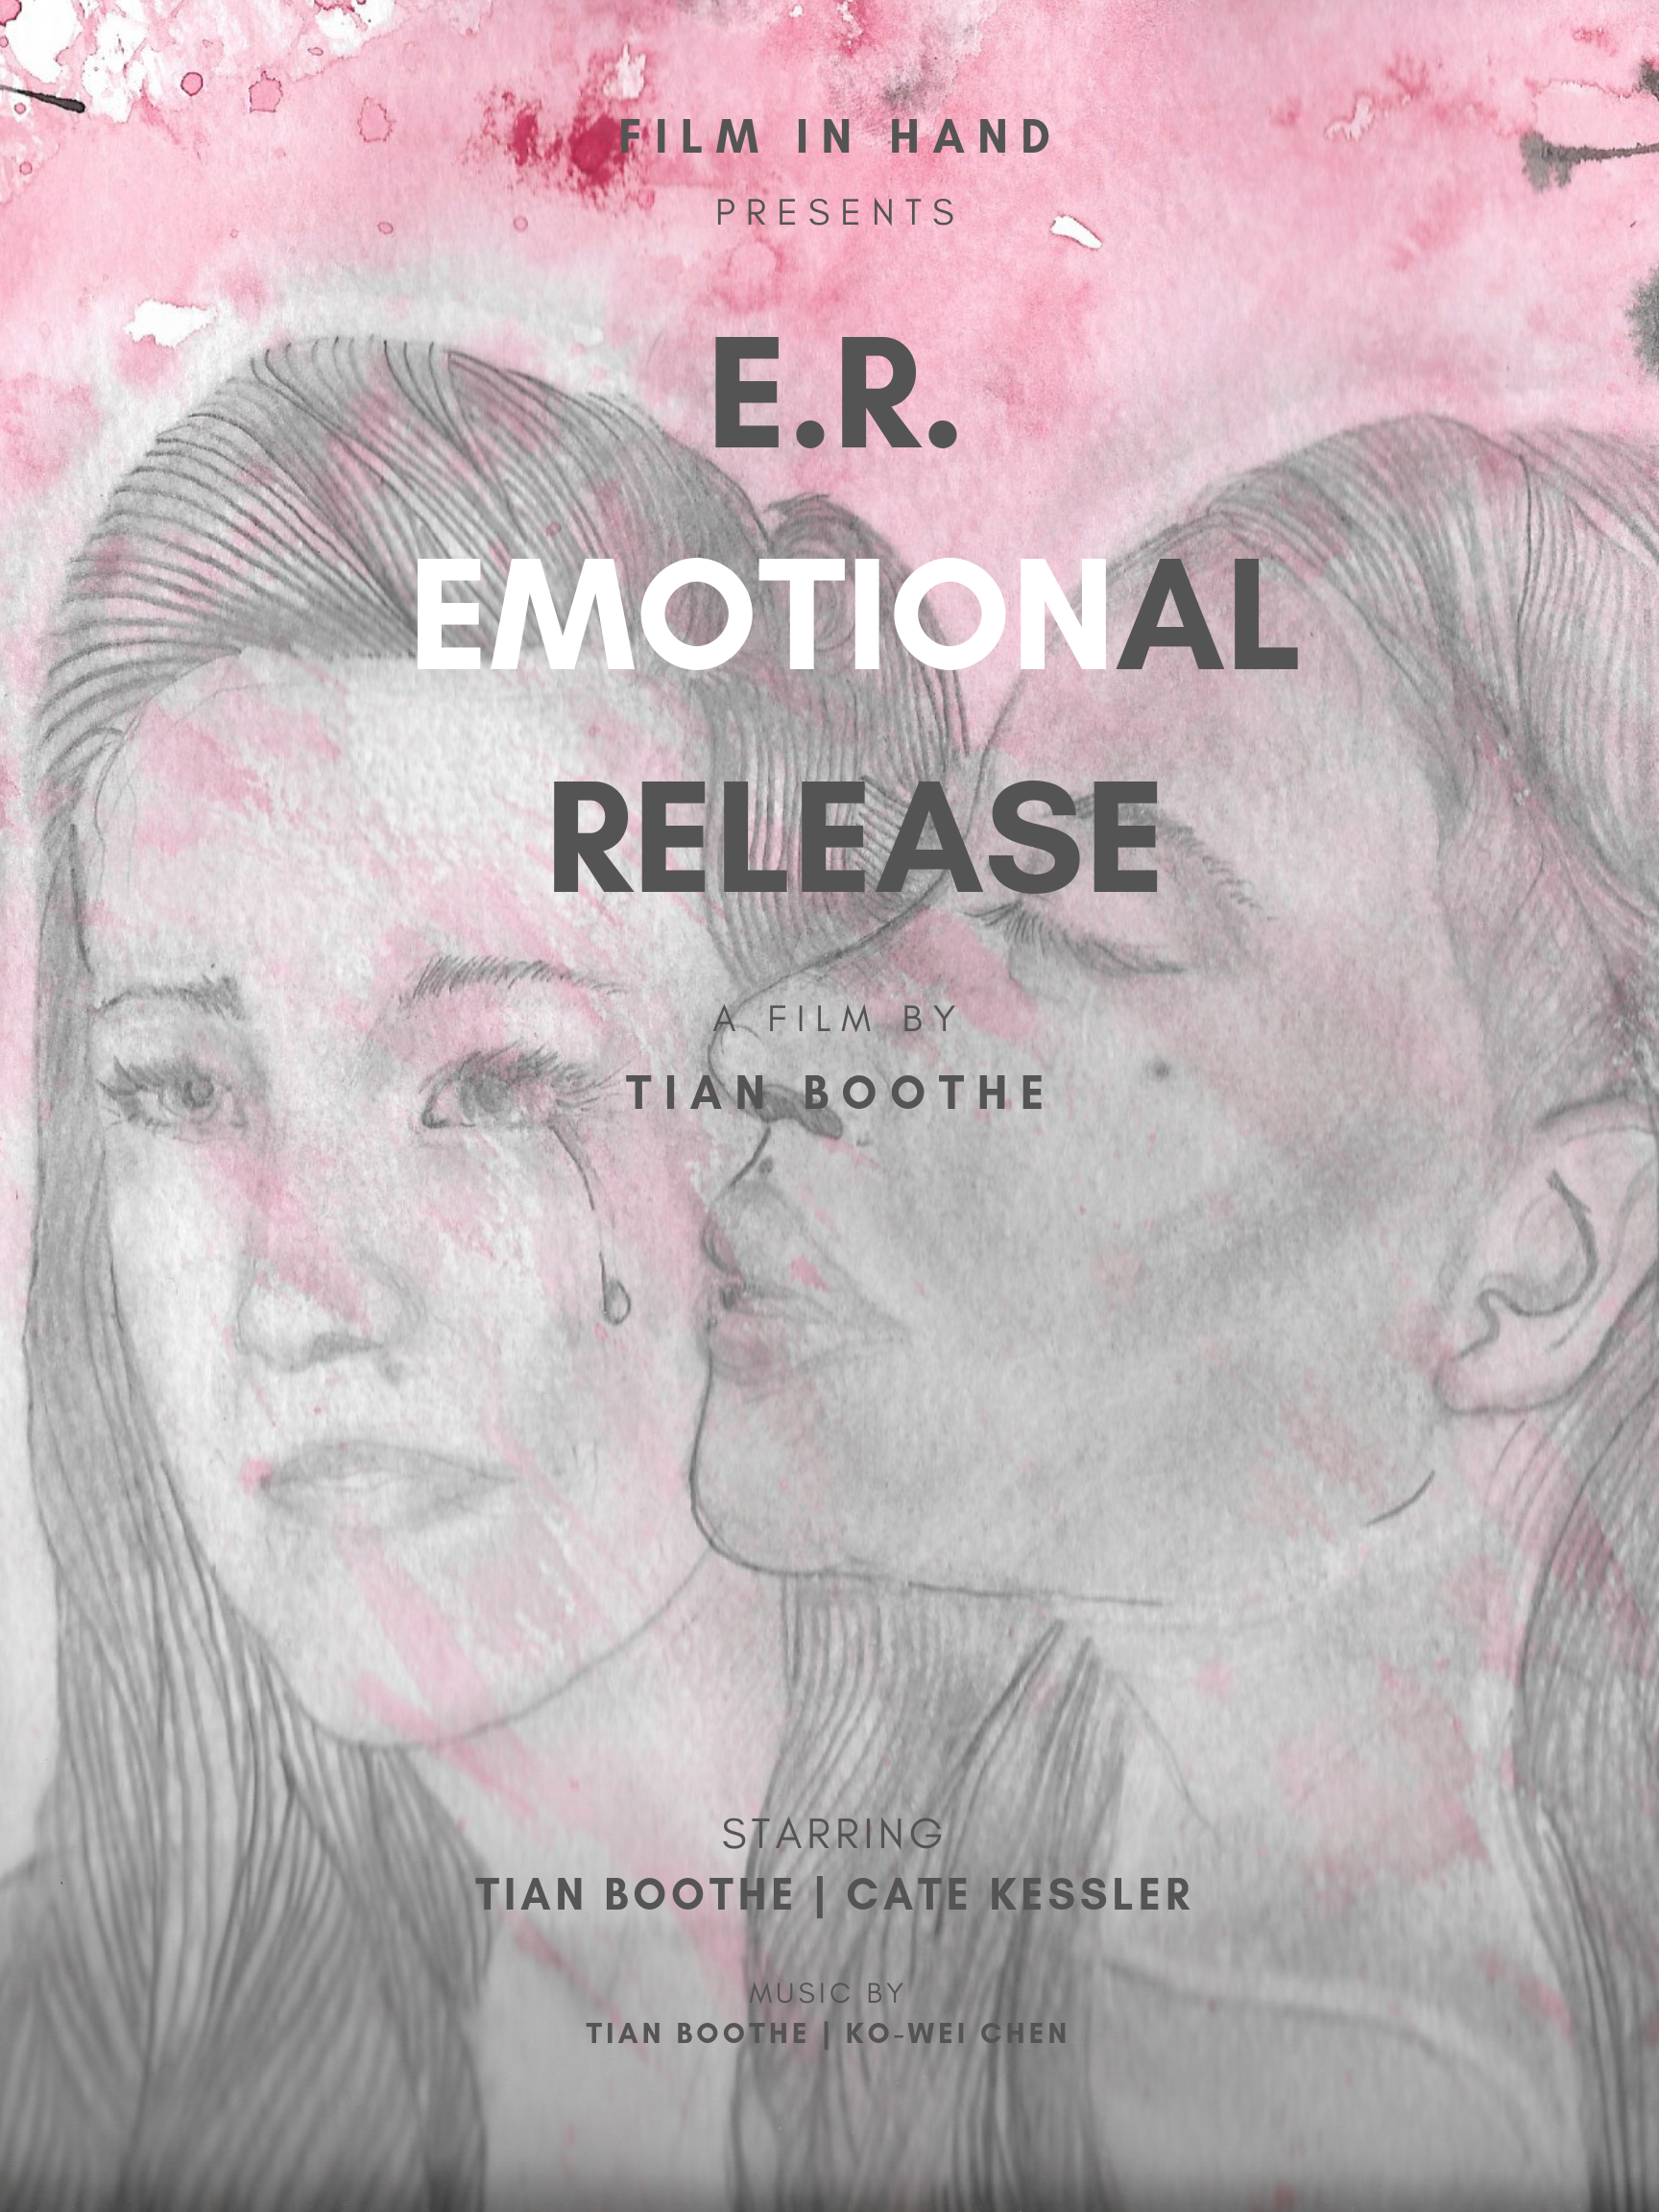 - 2019 © E.R. Emotional ReleaseTian Boothe is the Writer and Filmmaker behind E.R. Emotional Release. Ko-wei Chen is the Orchestrator who works alongside Tian as they compose this narrative music album which explores the romantic side of an emotional catharsis through musical and visual story telling. Cate Kessler is one of the lead Actresses who stars as the love interest the story is based upon.